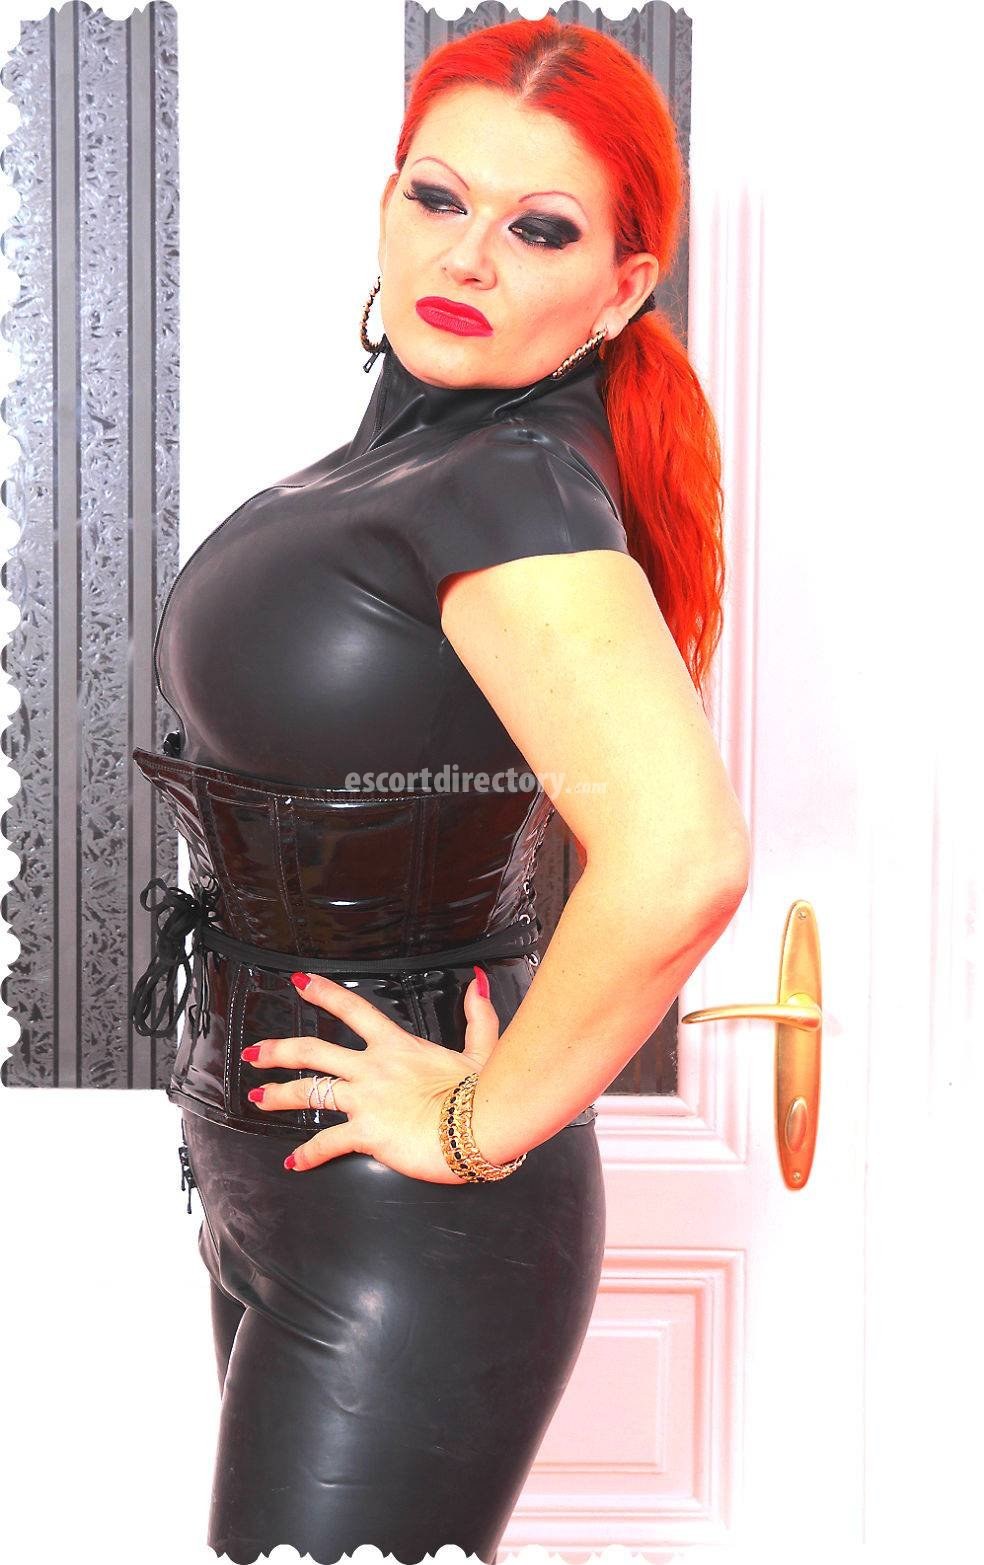 escort worms domina ulm